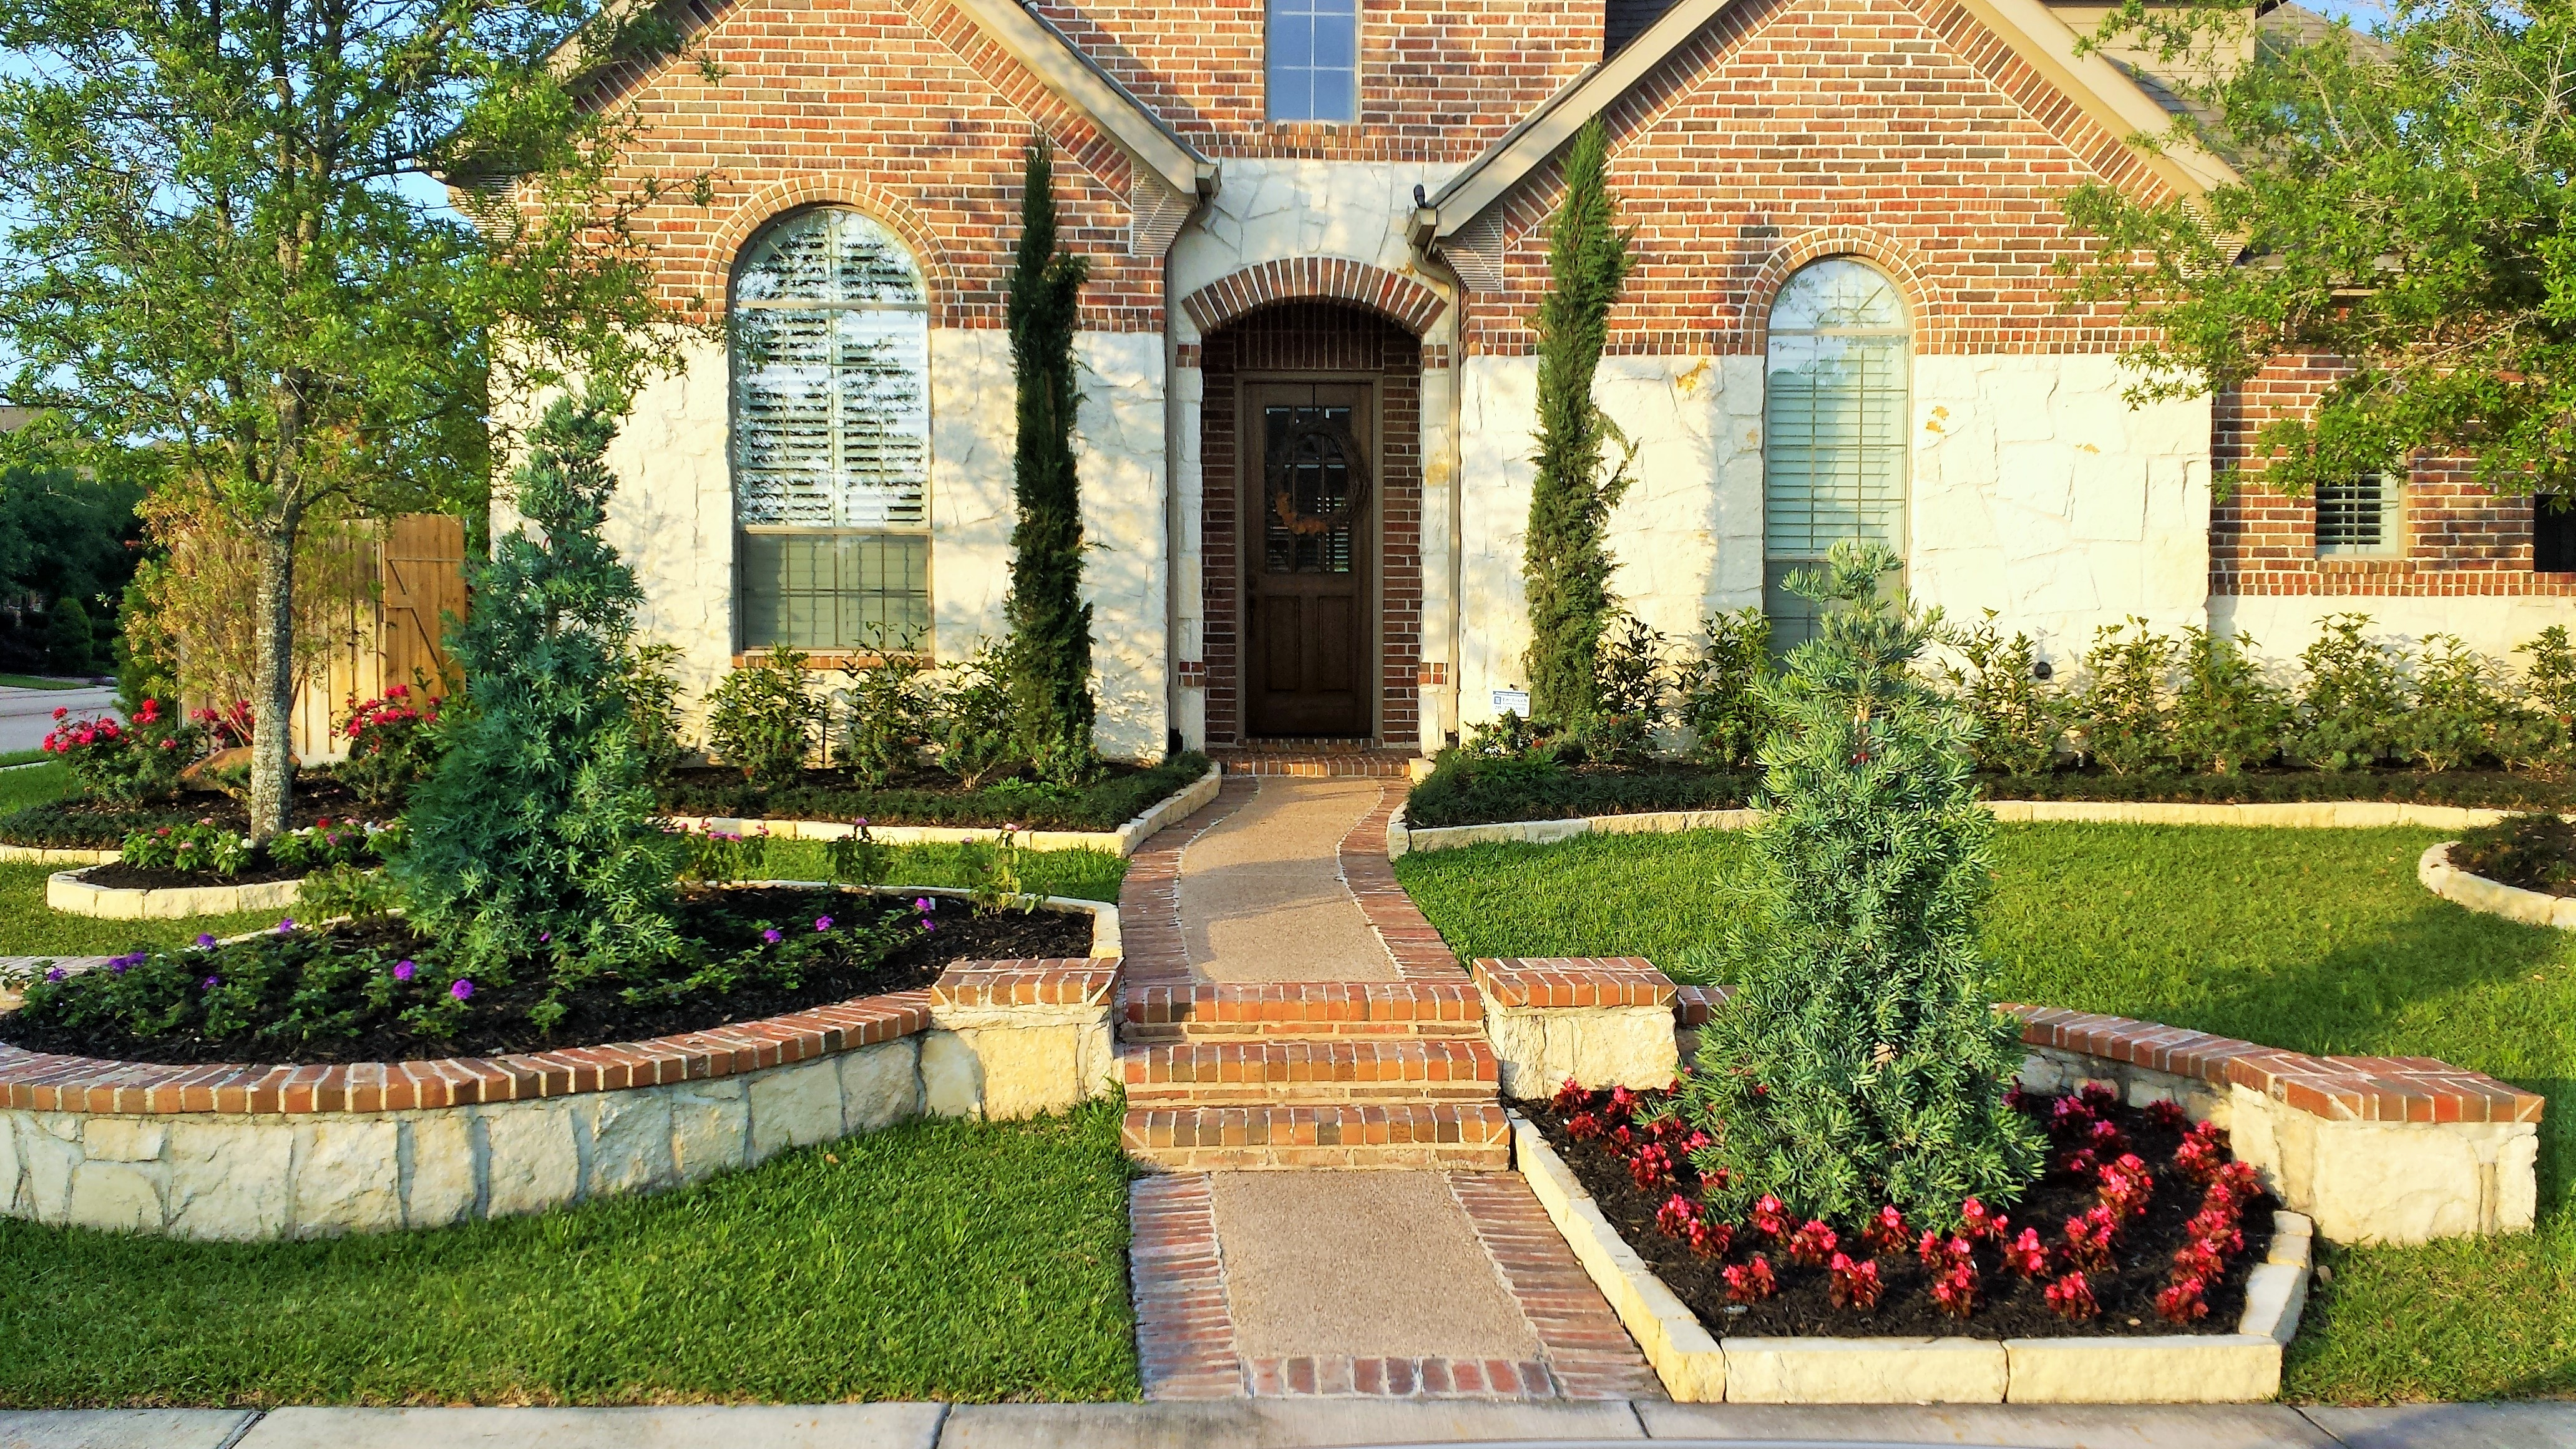 Customized landscape design with you in mind